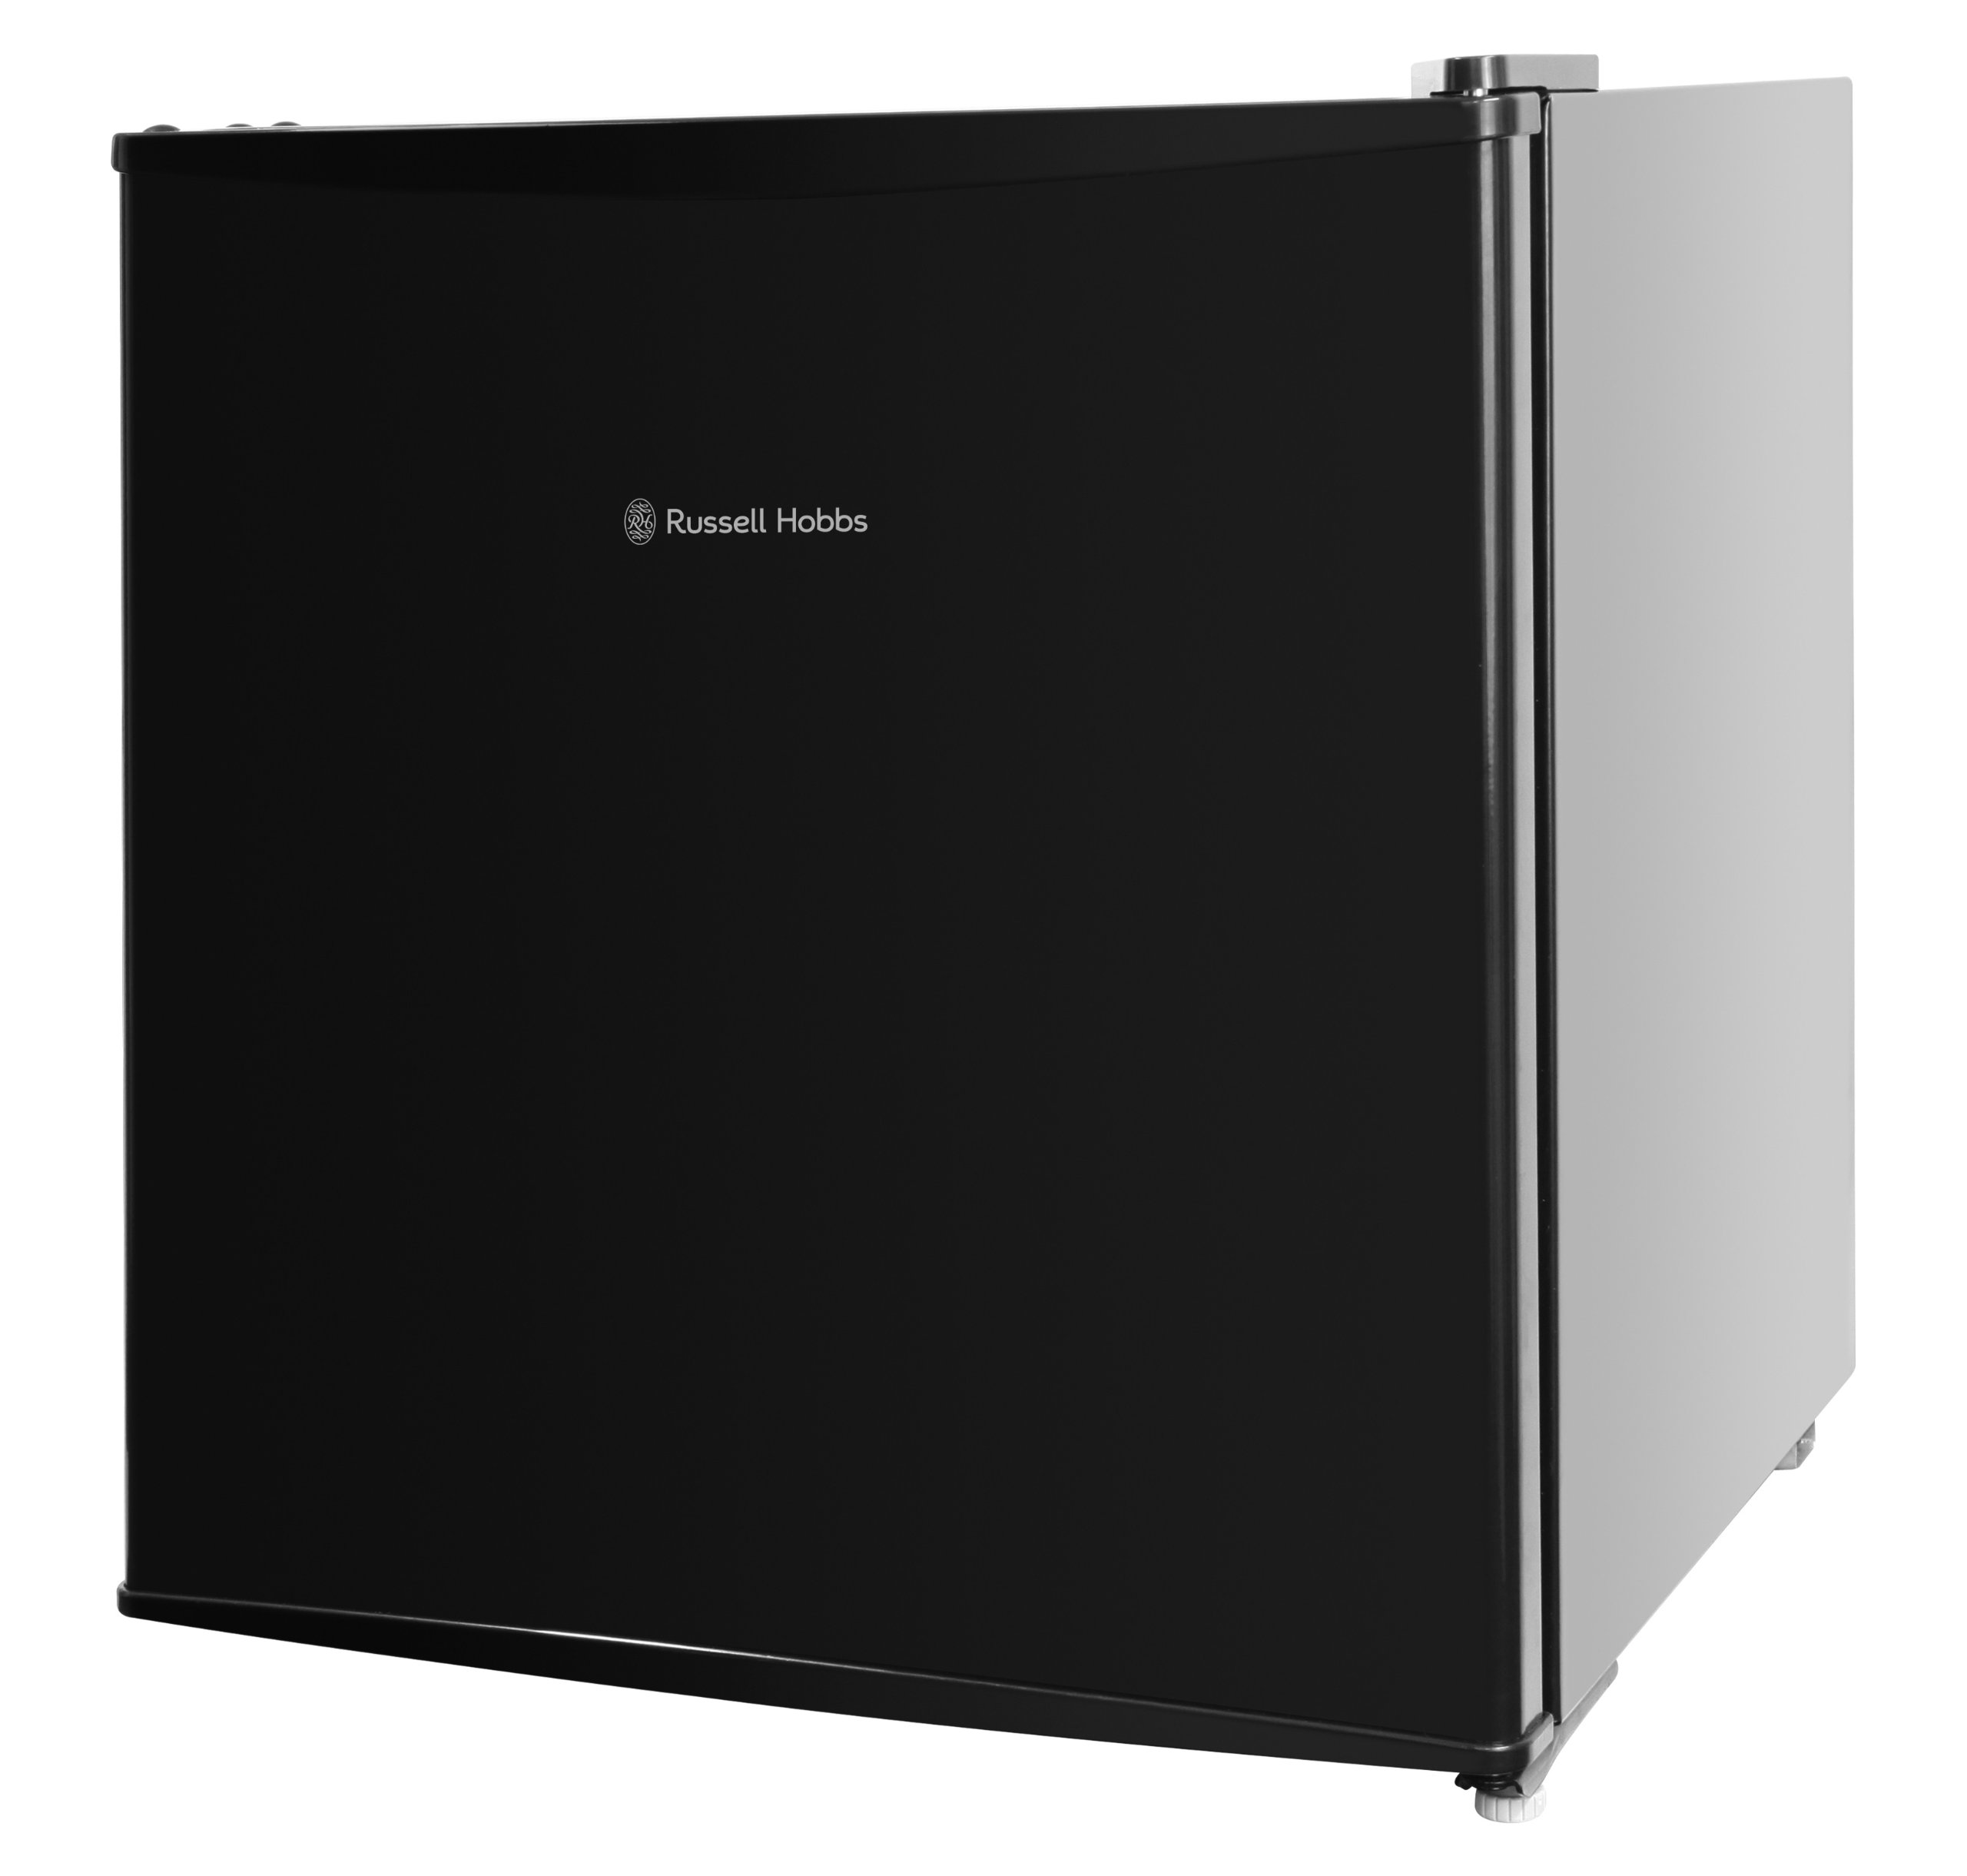 711H0K6HePL - Russell Hobbs RHTTLF1B 43L Table Top A+ Energy Rating Fridge Black